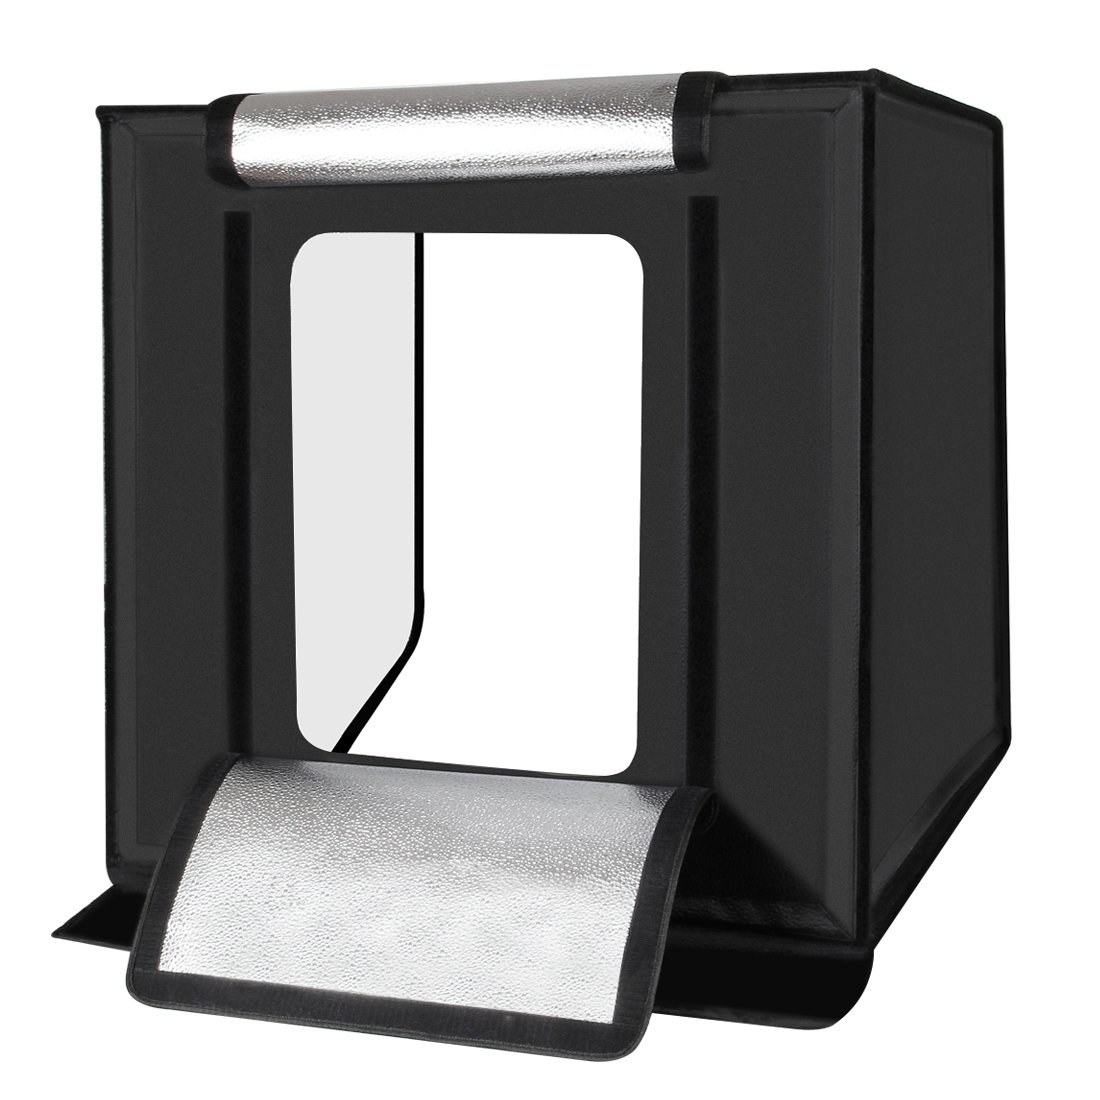 Portable Photo Studio with 3 Backdrops (Black/White/Orange), 16''x16'' Light Box for Jewelry,Toys,Baking,Small Items Photography, Shooting Tent Box Kit Brightness Adjustable by TSLEEN (Image #3)